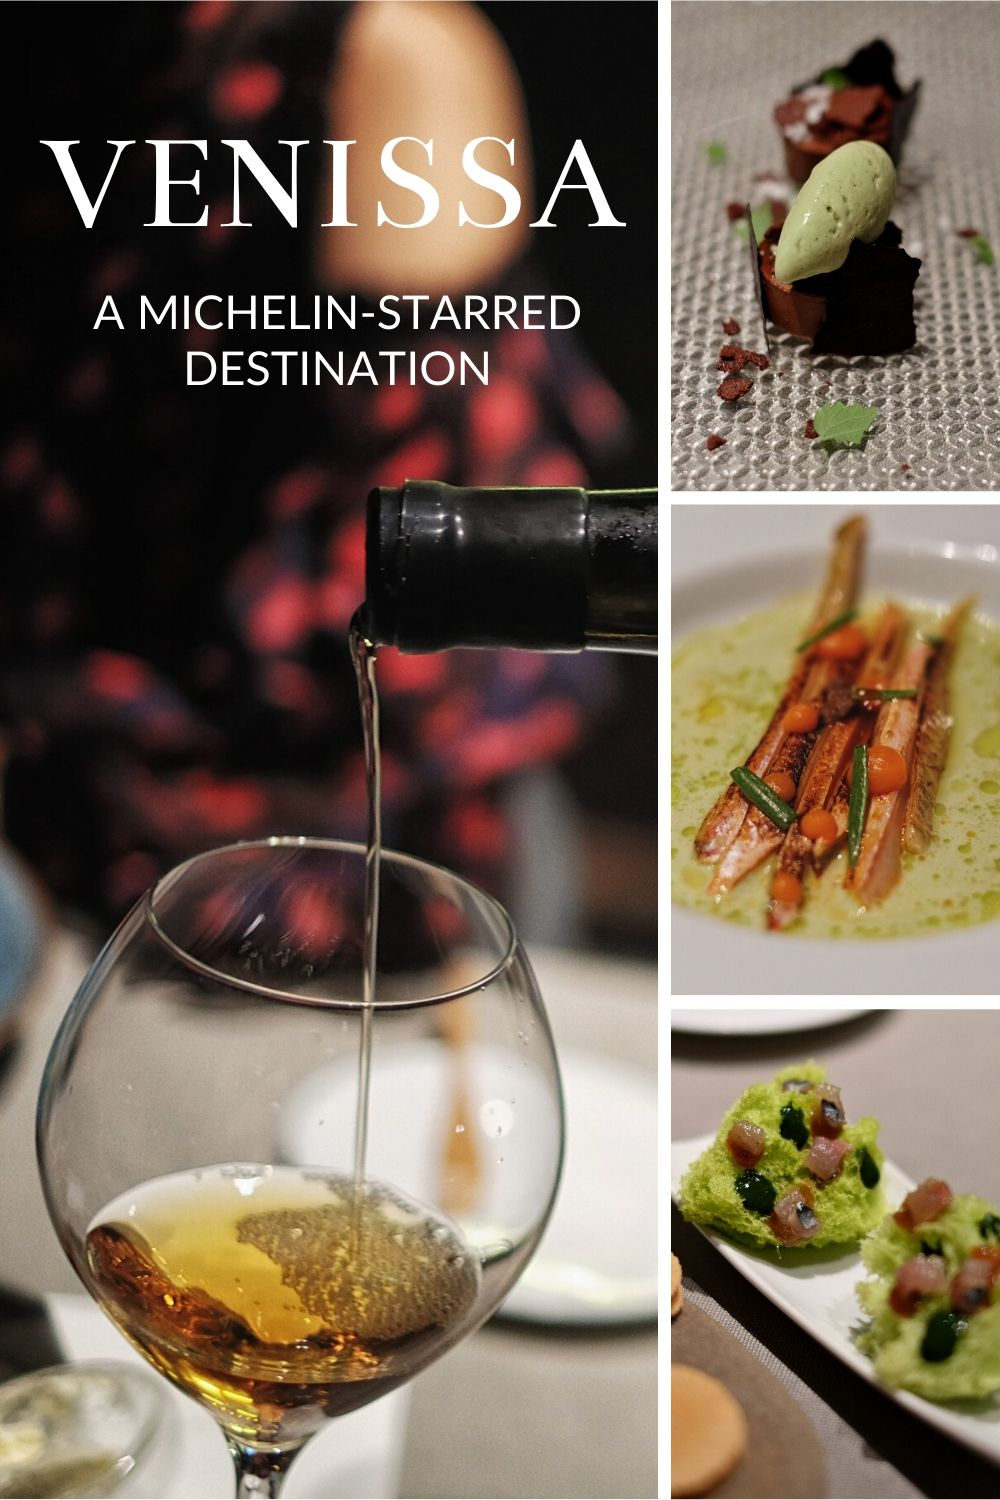 Ristorante Venissa - A Michelin-Starred Destination. Review by White Caviar Life.